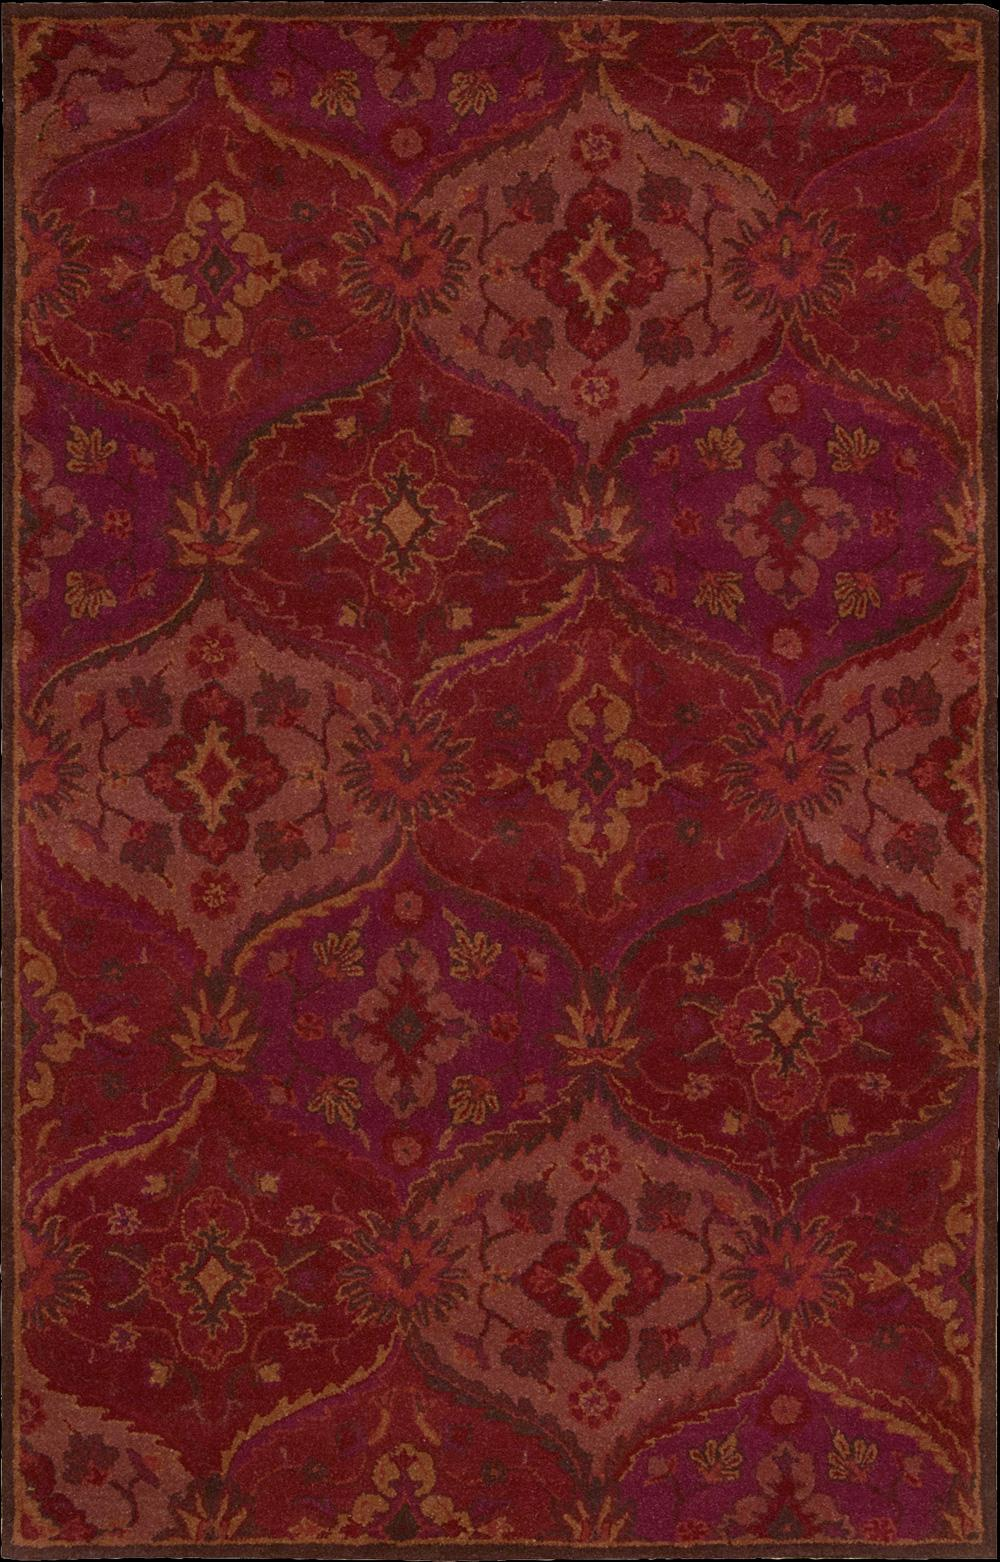 Nourison India House Area Rug 5' x 8' - Item Number: 16202